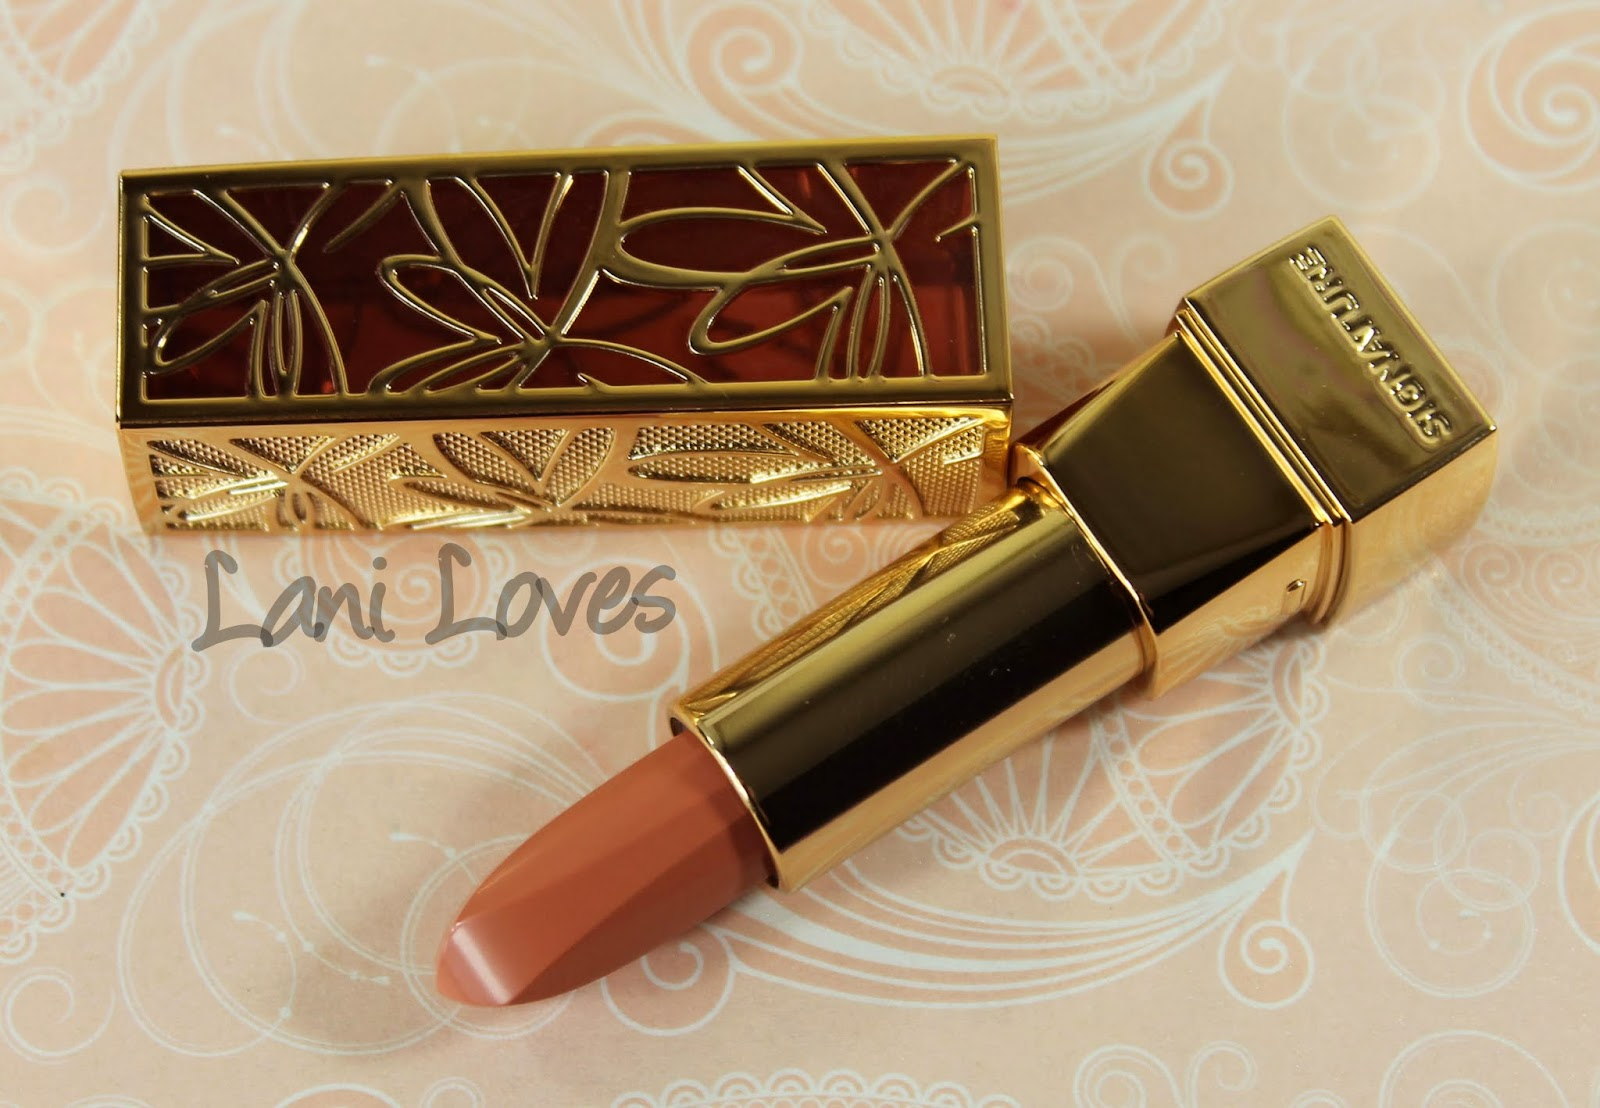 Missha Signature Glam Art Rouge - SBE202 Lipstick Swatches & Review